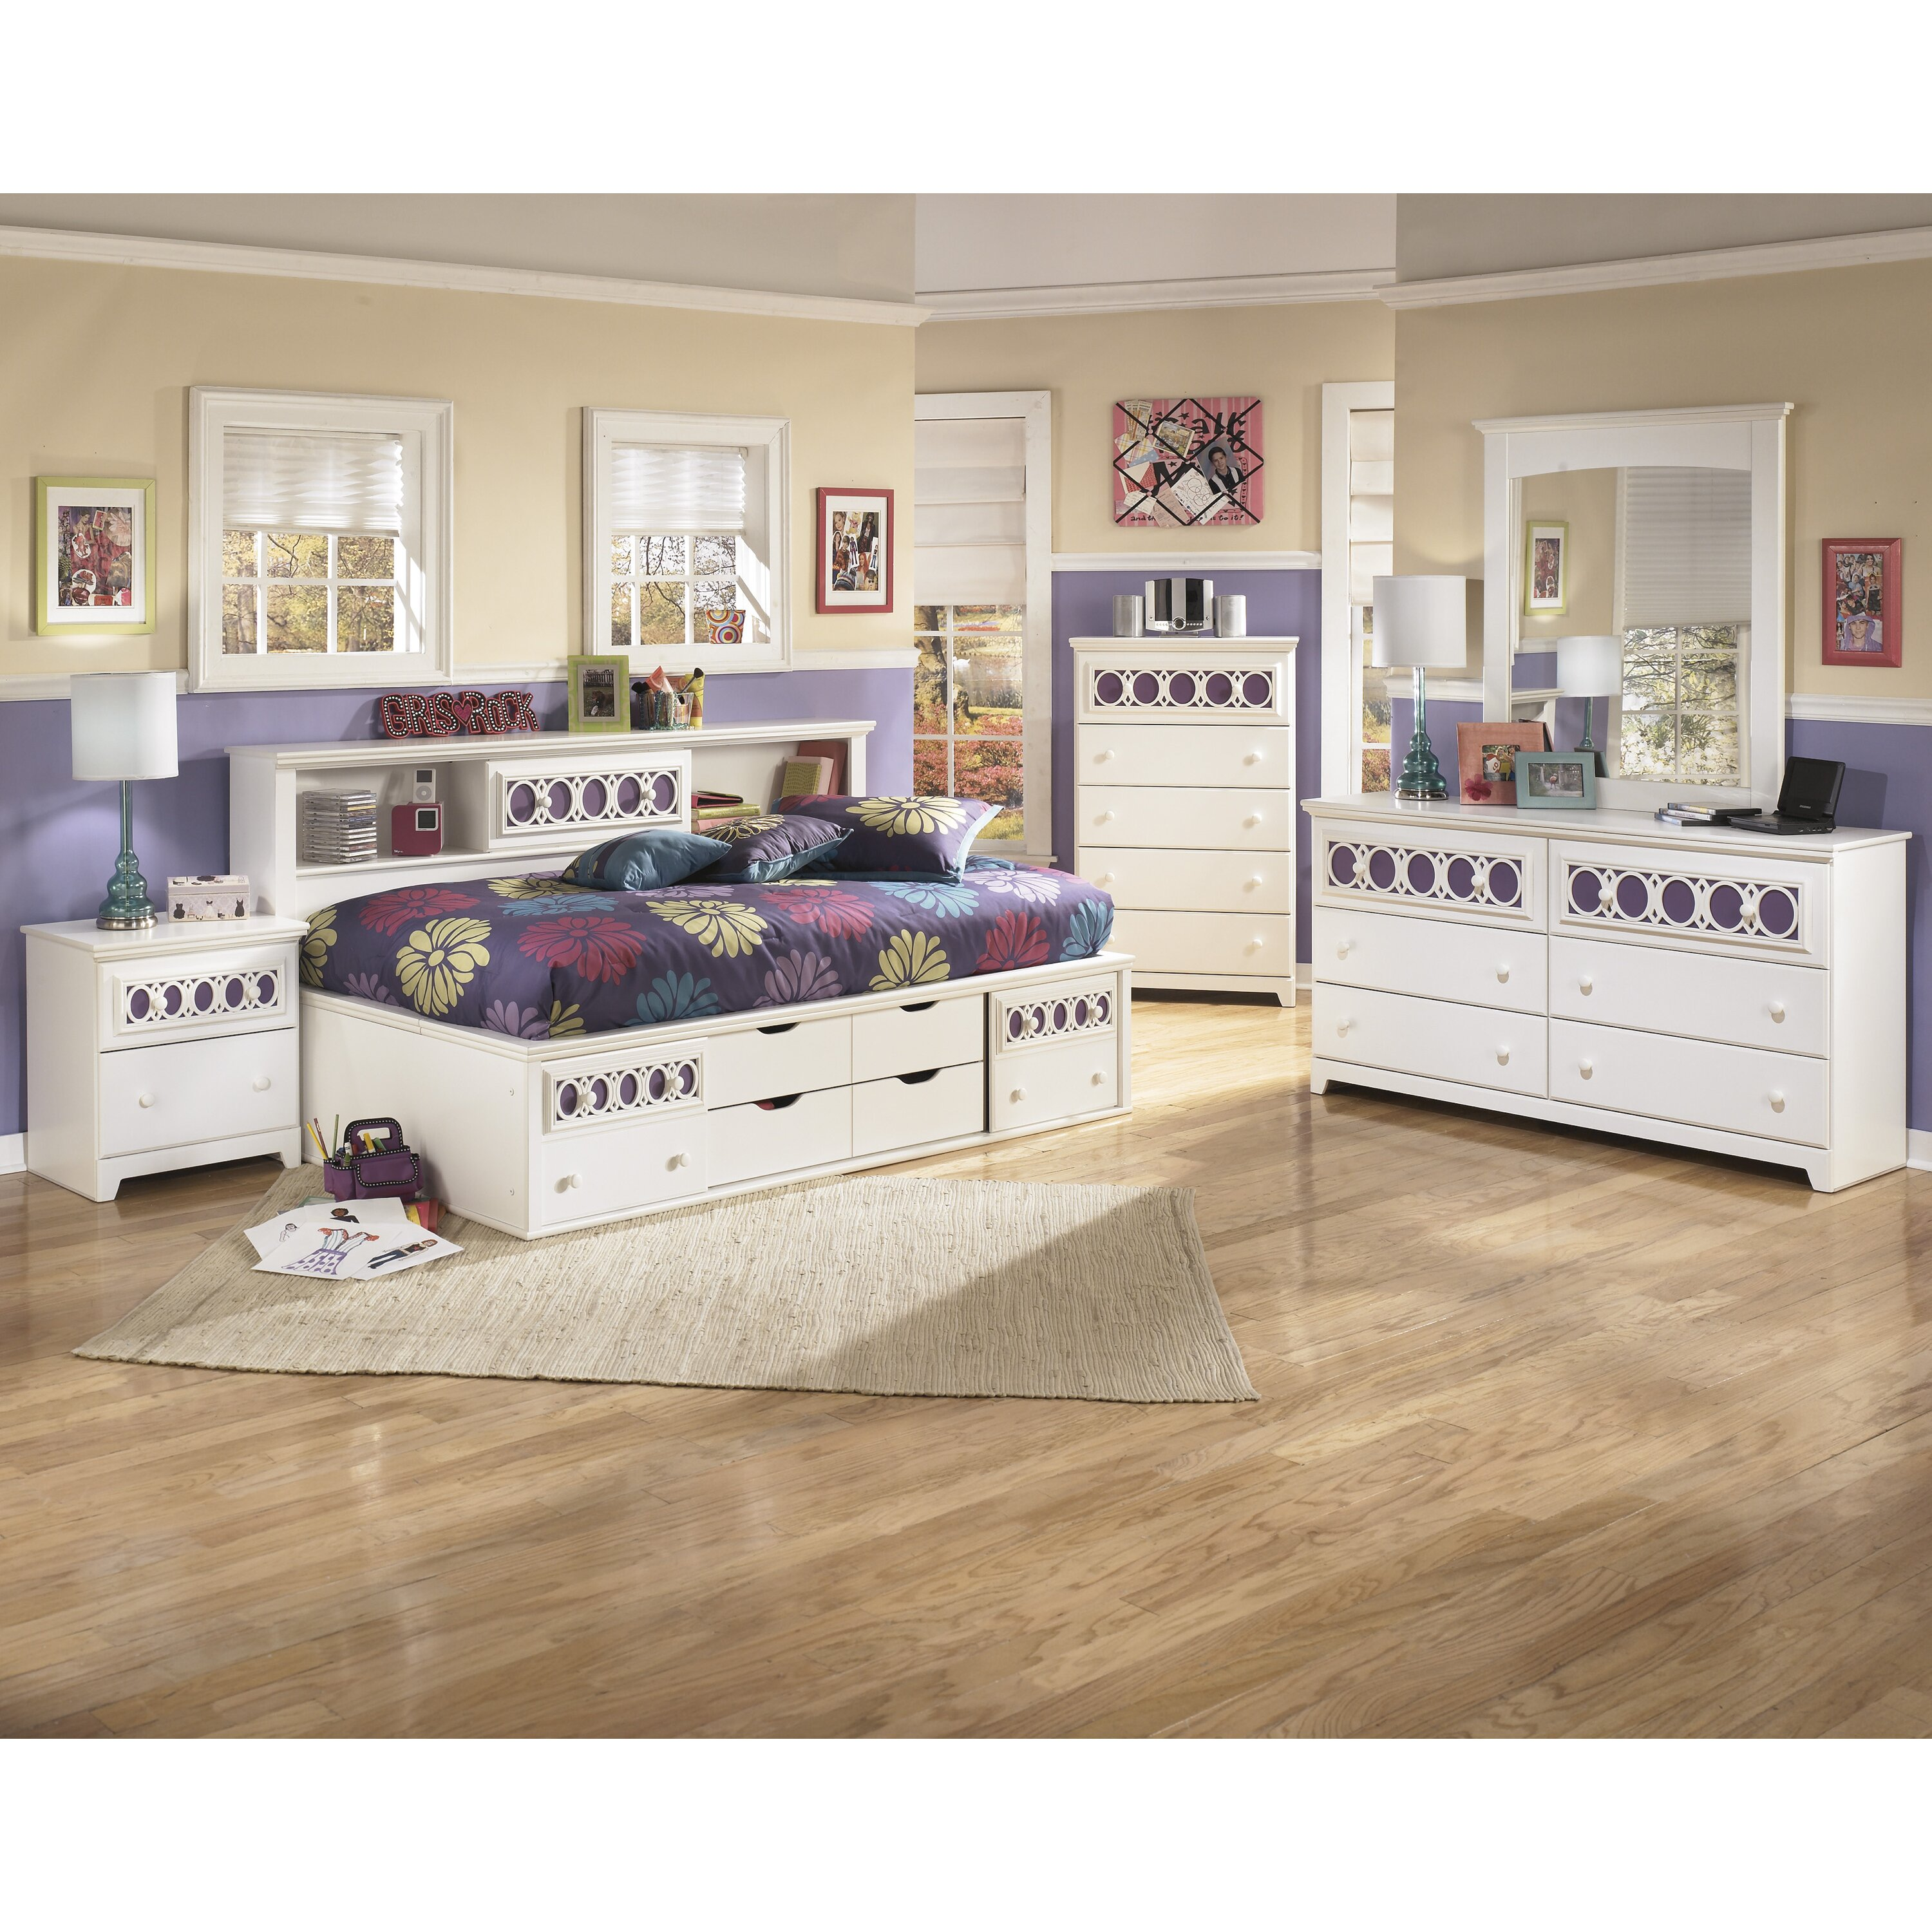 Ashley Furniture Bedroom Furniture: Signature Design By Ashley Zayley Panel Customizable